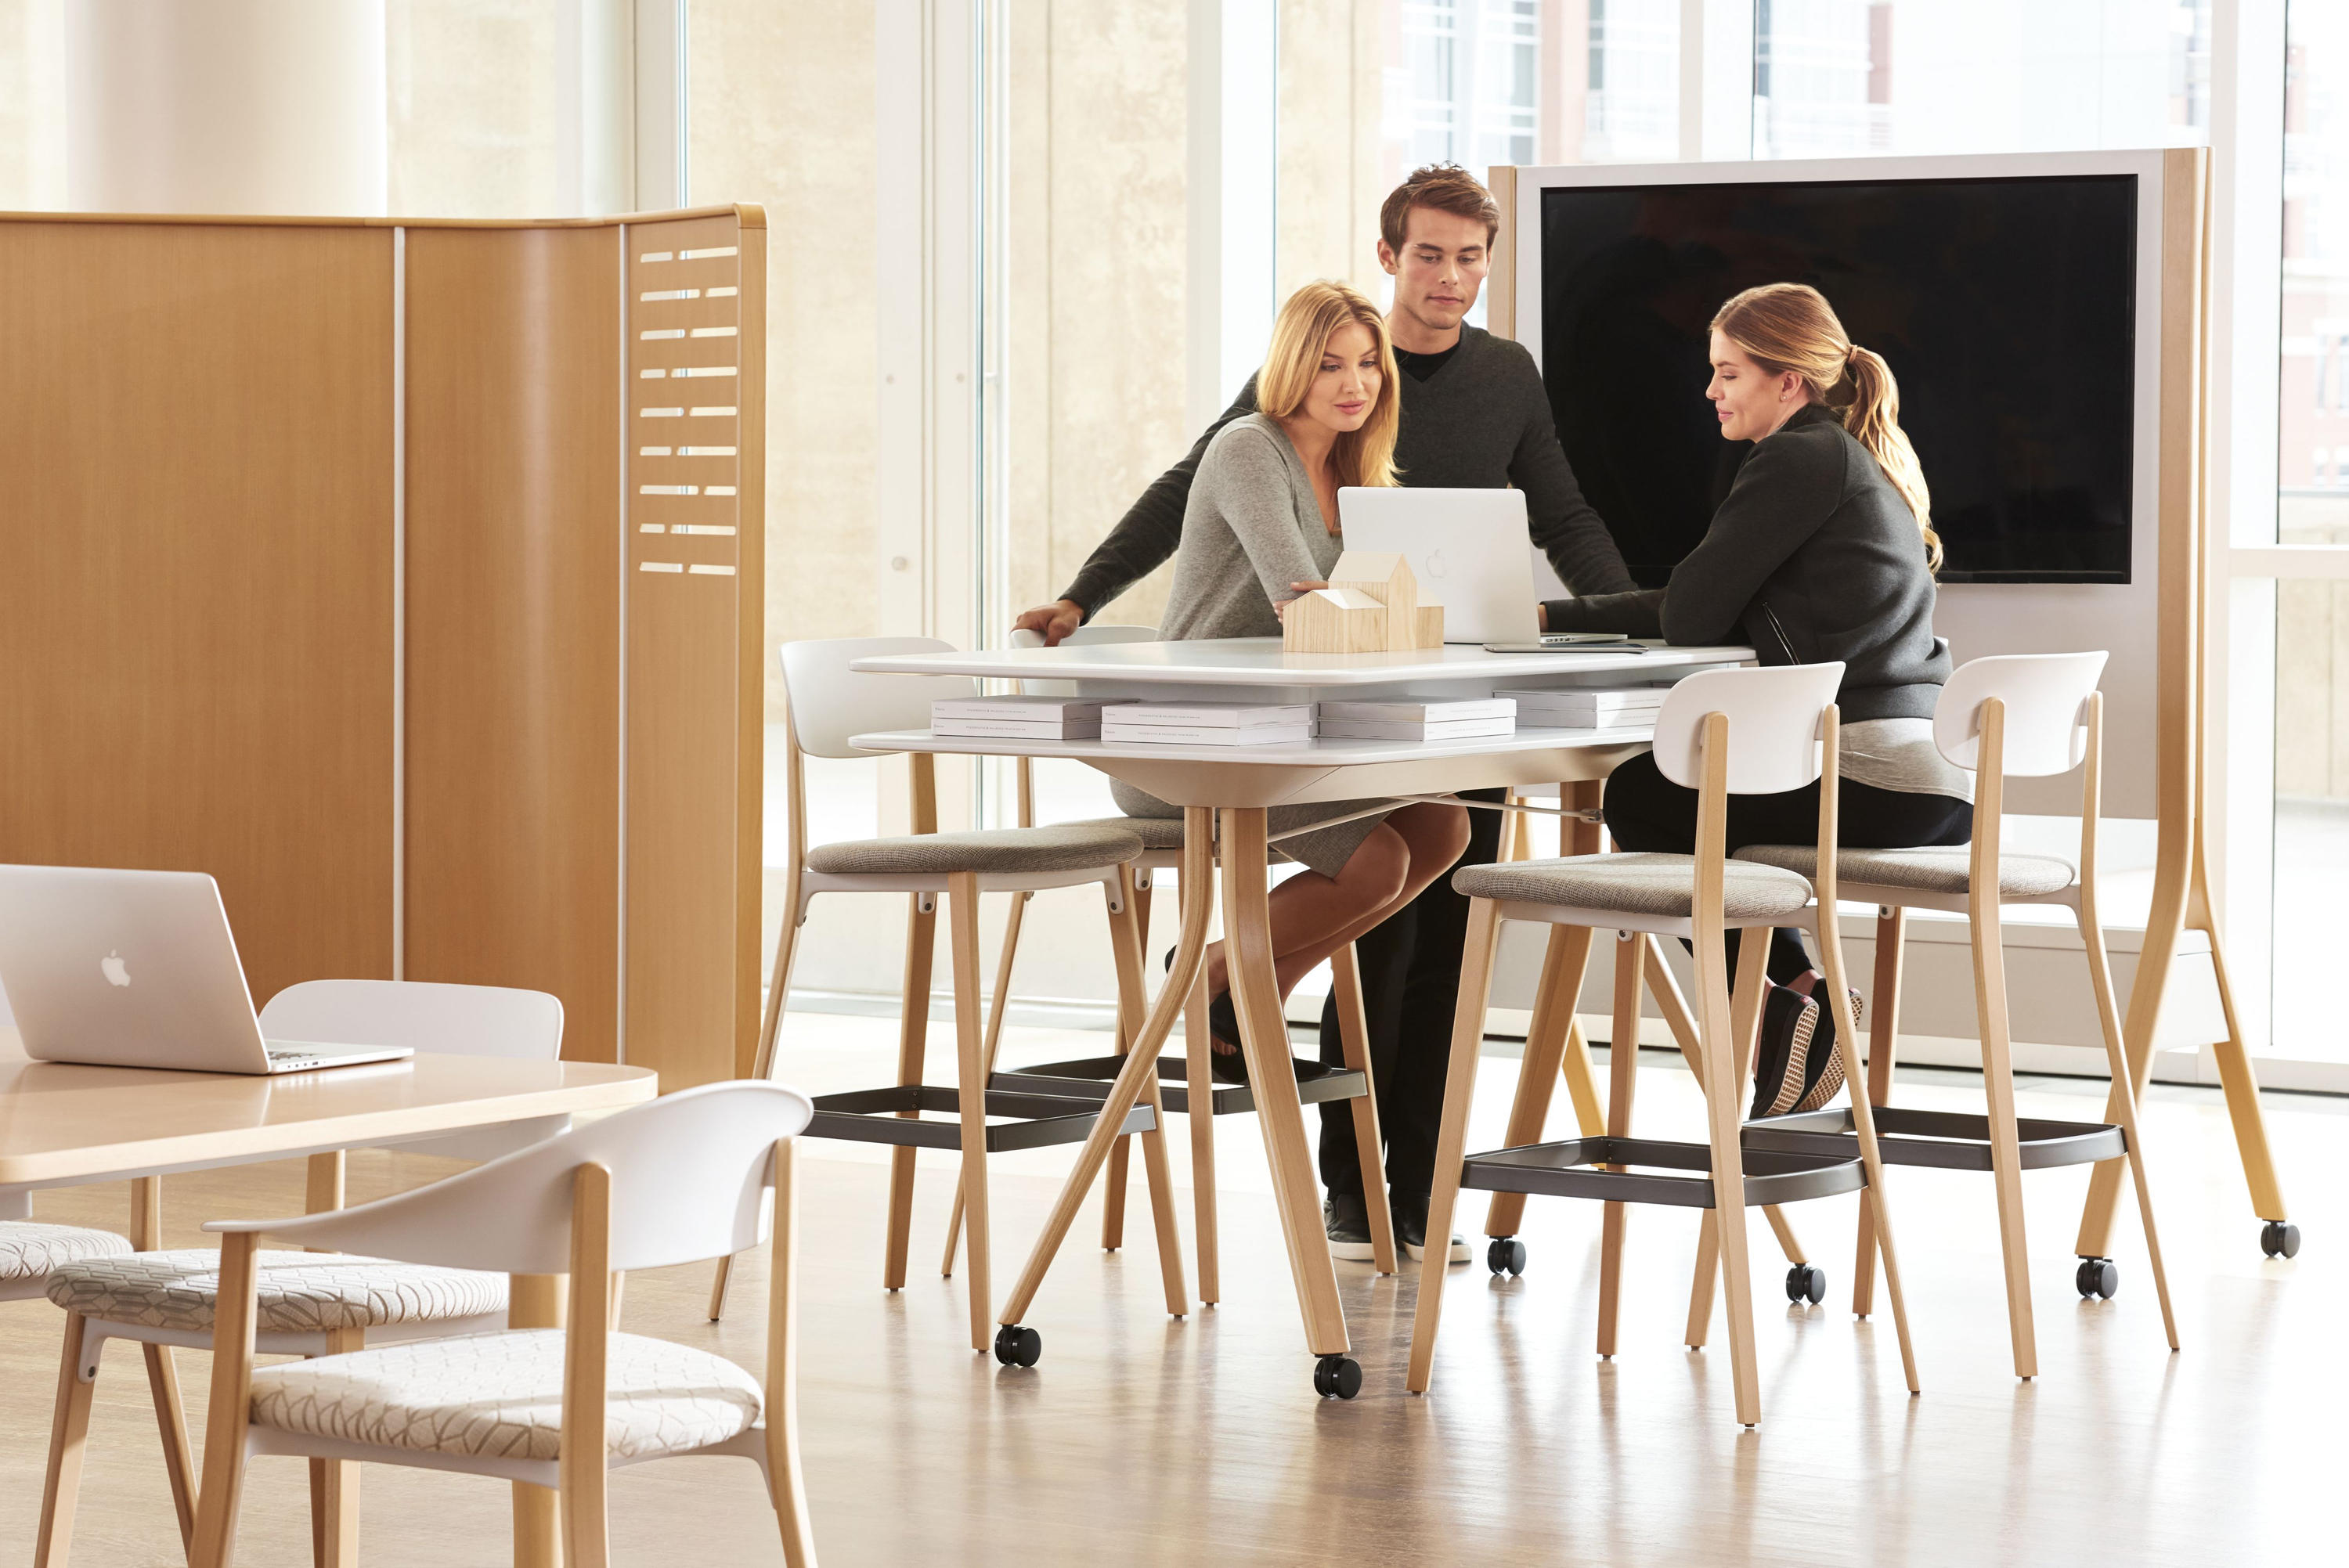 10 Creative, Inspiring Collaborative Workspace Design Ideas